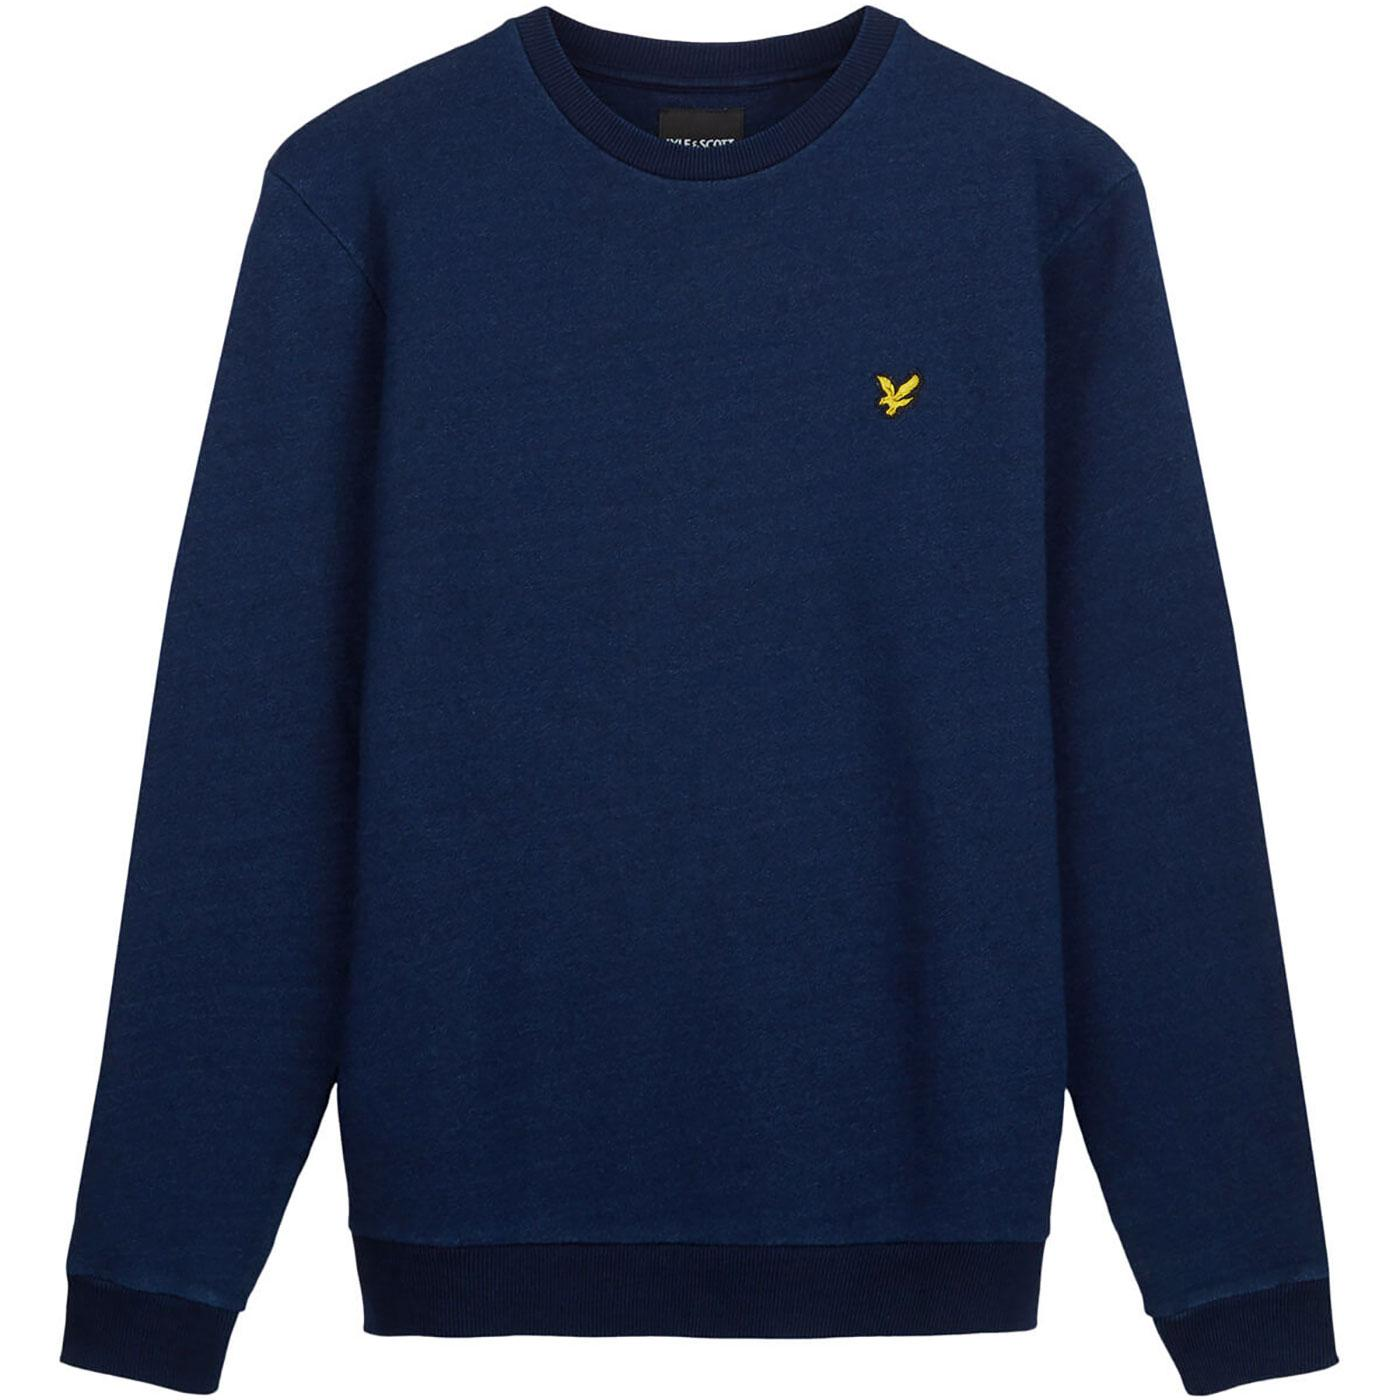 LYLE & SCOTT Men's Indigo Dye Crew Neck Sweater